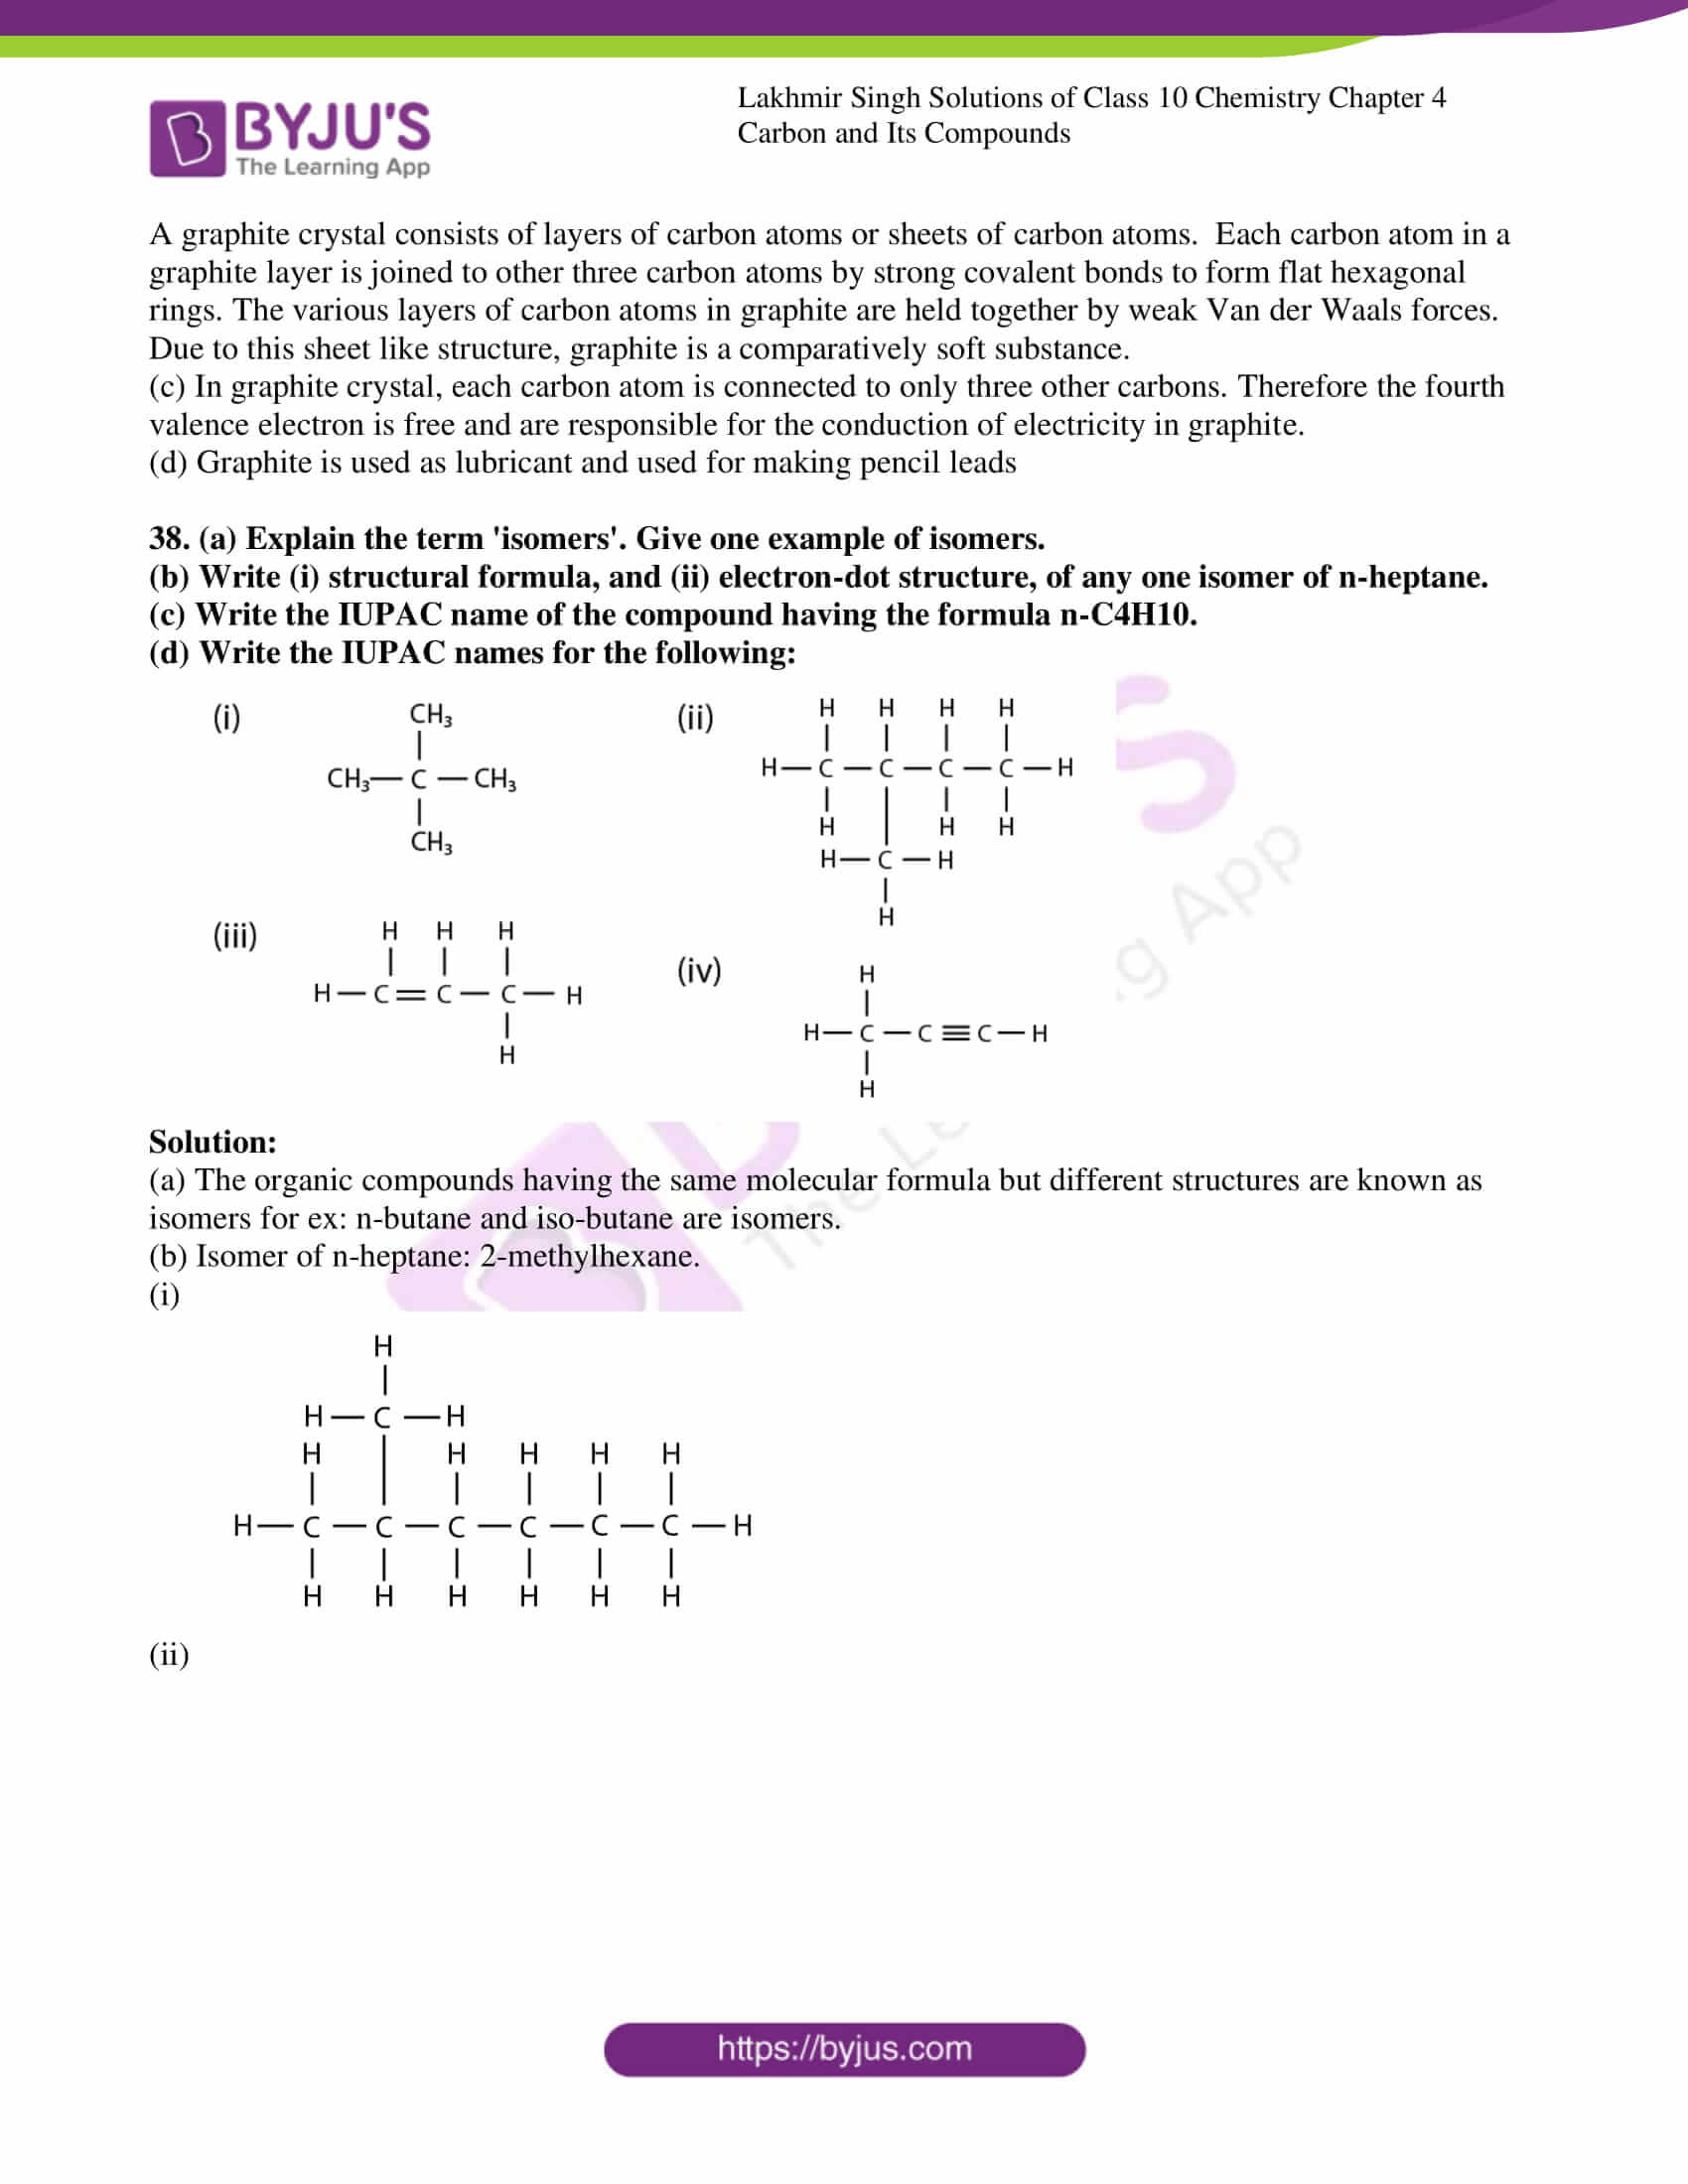 lakhmir singh solutions class 10 chemistry chapter 4 11